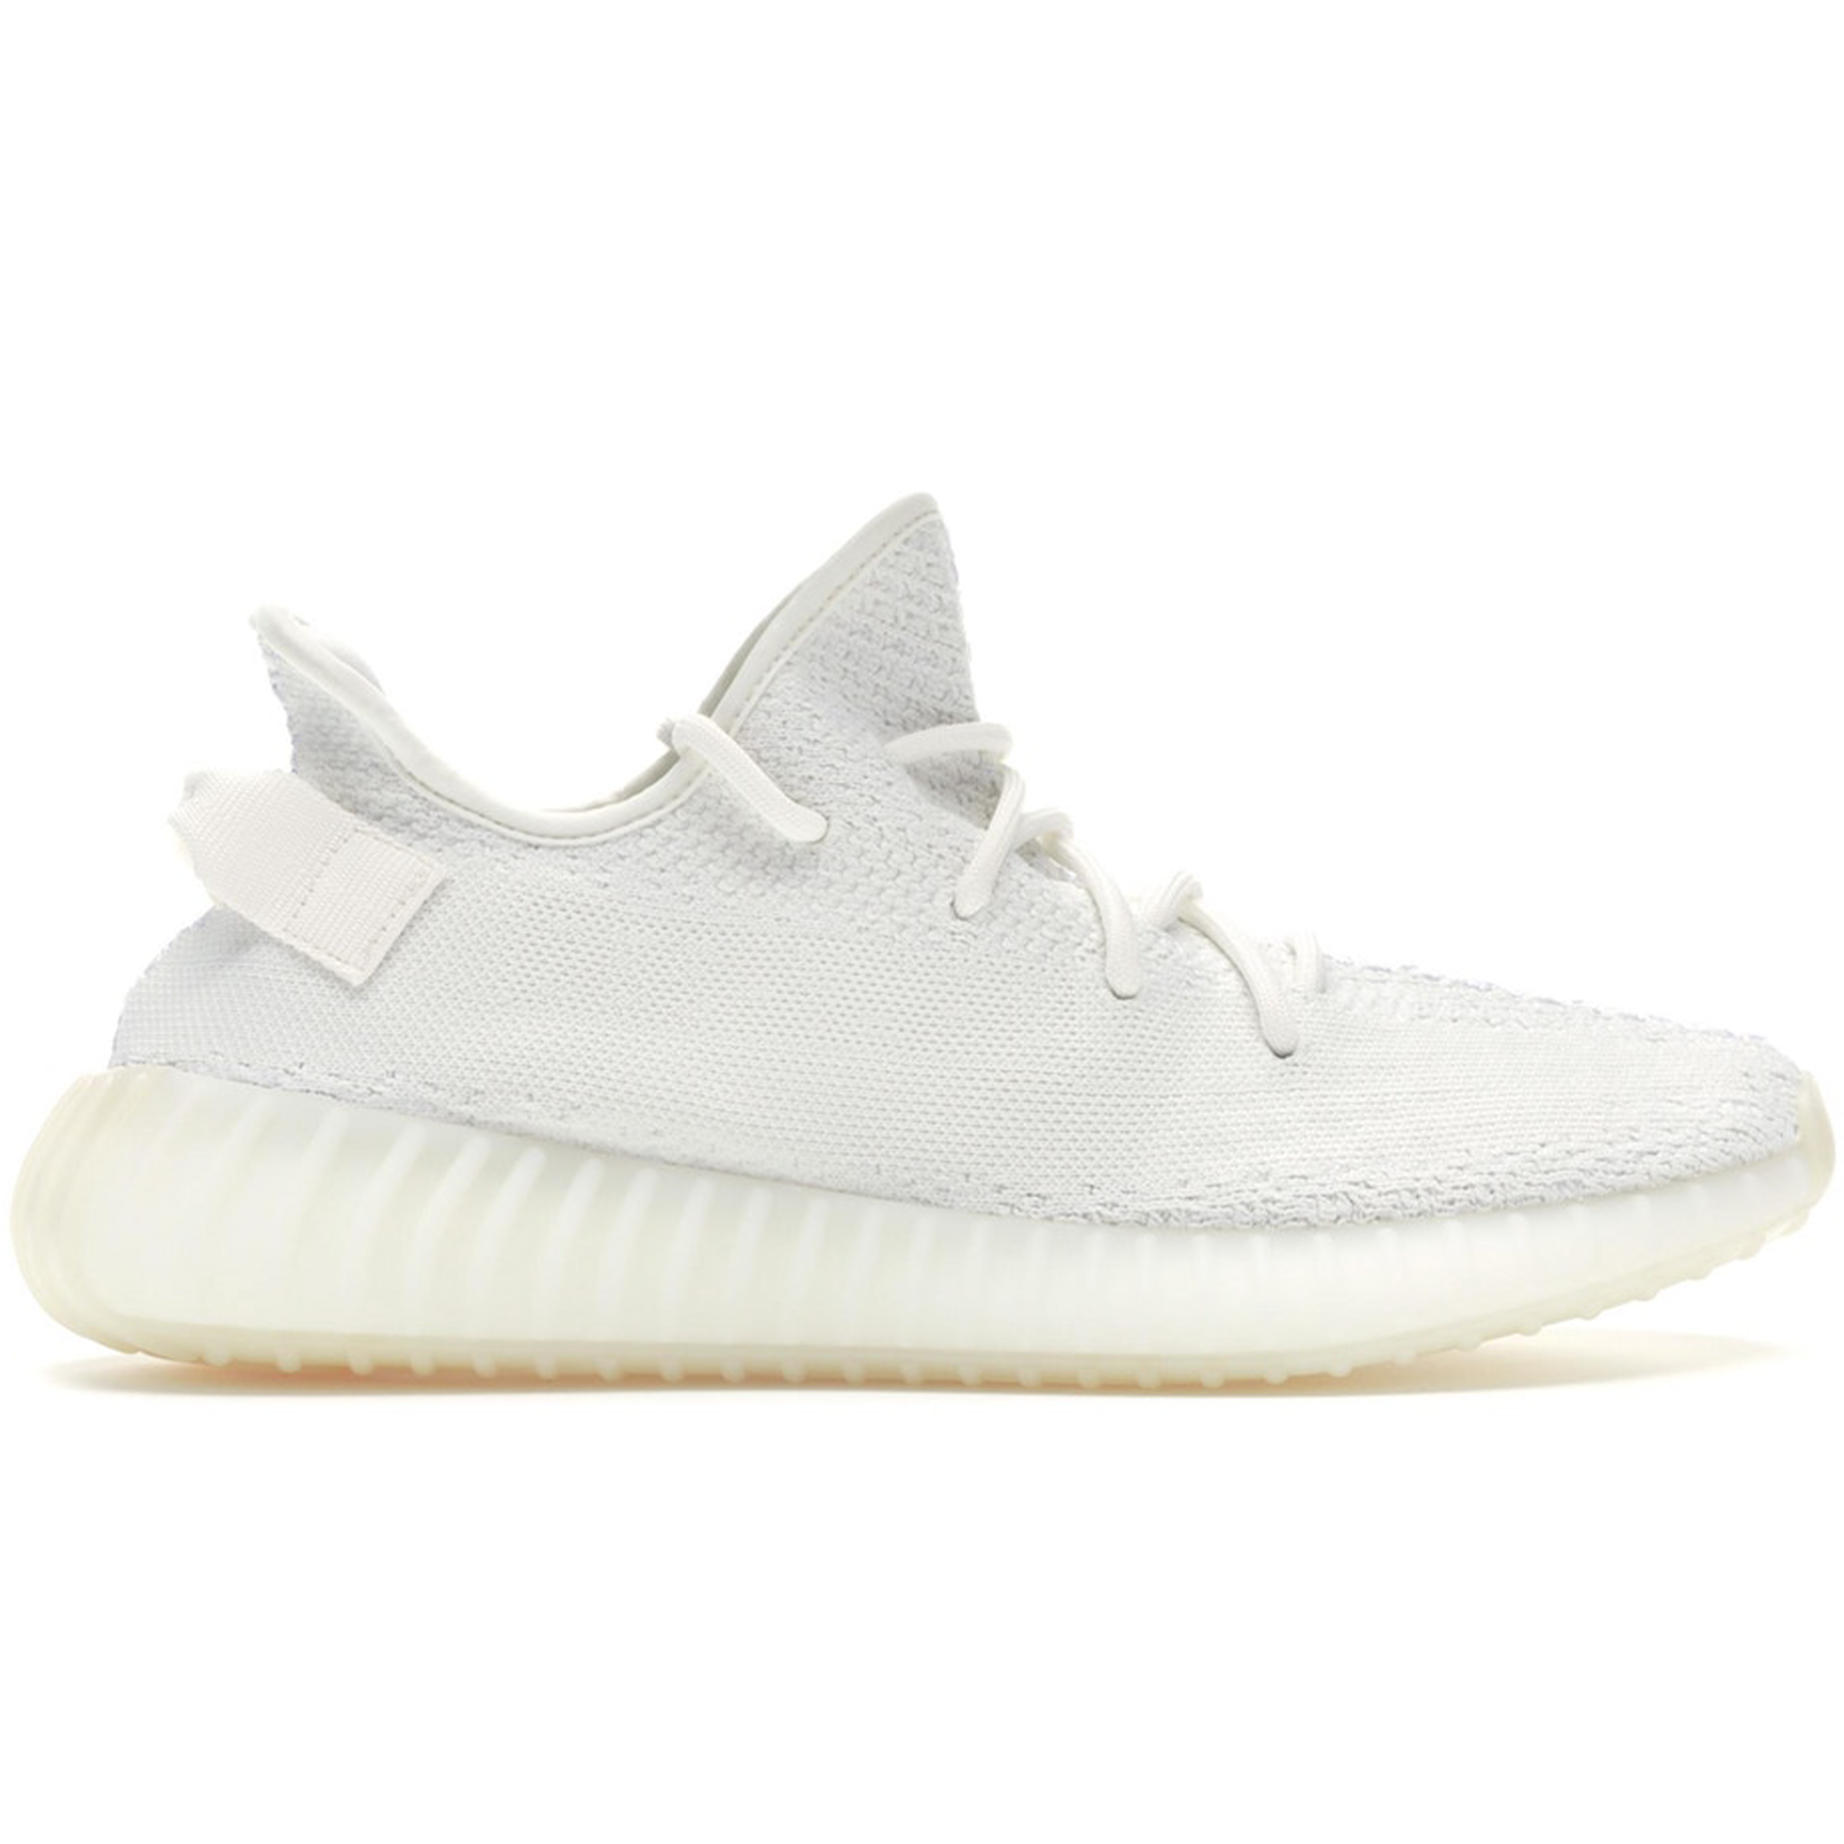 Yeezy Boost 350 V2 Cream/Triple White - CookiesandKicksLA